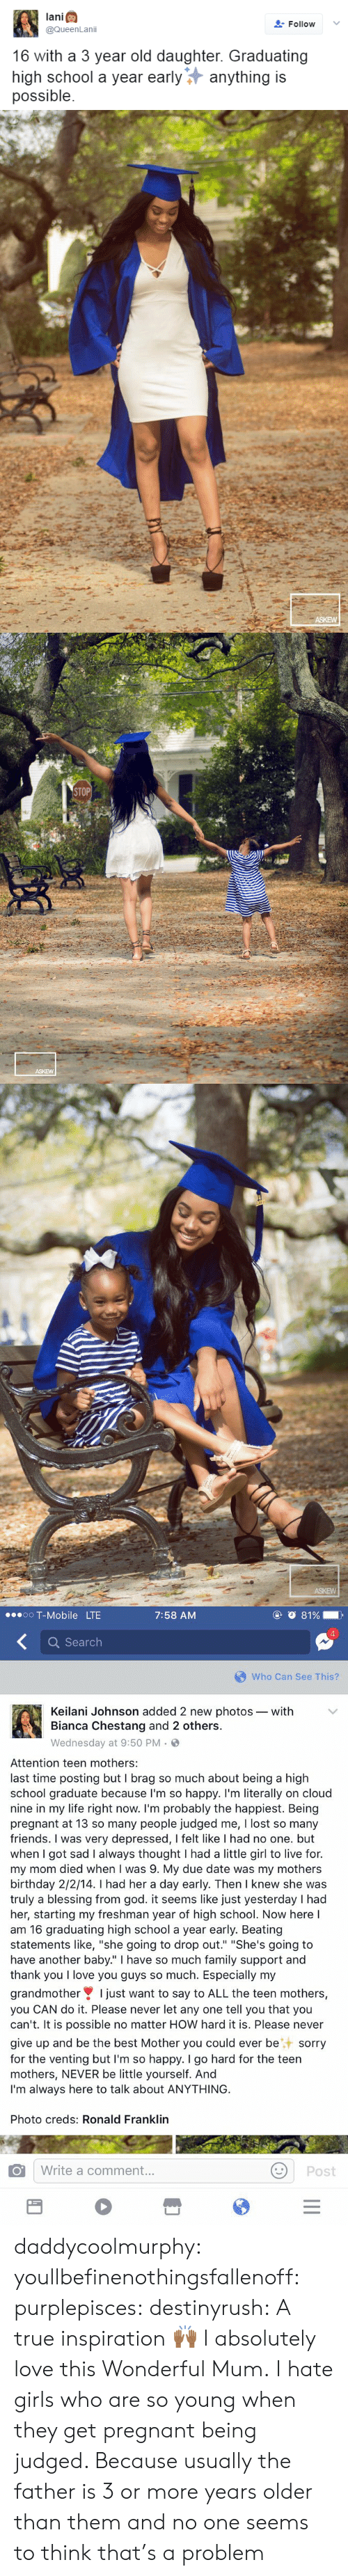 """due date: lani  @QueenLanii  FollowV  16 with a 3 year old daughter. Graduating  high school a year earlyanything is  possible   ASKEW   STOP  ASKEW   ASKEW   oO T-Mobile LTE  7:58 AM  4  Q Search  Who Can See This?  Keilani Johnson added 2 new photos- with  Bianca Chestang and 2 others.  Wednesday at 9:50 PM .  Attention teen mothers:  last time posting but I brag so much about being a high  school graduate because I'm so happy. I'm literally on cloud  nine in my life right now. I'm probably the happiest. Being  pregnant at 13 so many people judged me, I lost so many  friends. I was very depressed, I felt like I had no one. but  when I got sad I always thought I had a little girl to live for.  my mom died when I was 9. My due date was my mothers  birthday 2/2/14. I had her a day early. Then I knew she was  truly a blessing from god. it seems like just yesterday I had  her, starting my freshman year of high school. Now here l  am 16 graduating high school a year early. Beating  statements like, """"she going to drop out."""" """"She's going to  have another baby."""" I have so much family support and  thank you I love you guys so much. Especially my  grandmotherI just want to say to ALL the teen mothers,  you CAN do it. Please never let any one tell you that you  can't. It is possible no matter HOW hard it is. Please never  give up and be the best Mother you could ever besorry  for the venting but I'm so happy. I go hard for the teen  mothers, NEVER be little yourself. And  I'm always here to talk about ANYTHING  Photo creds: Ronald Franklin  Write a comment.  Post daddycoolmurphy:  youllbefinenothingsfallenoff:  purplepisces:  destinyrush:  A true inspiration🙌🏾  I absolutely love this   Wonderful Mum.   I hate girls who are so young when they get pregnant being judged. Because usually the father is 3 or more years older than them and no one seems to think that's a problem"""